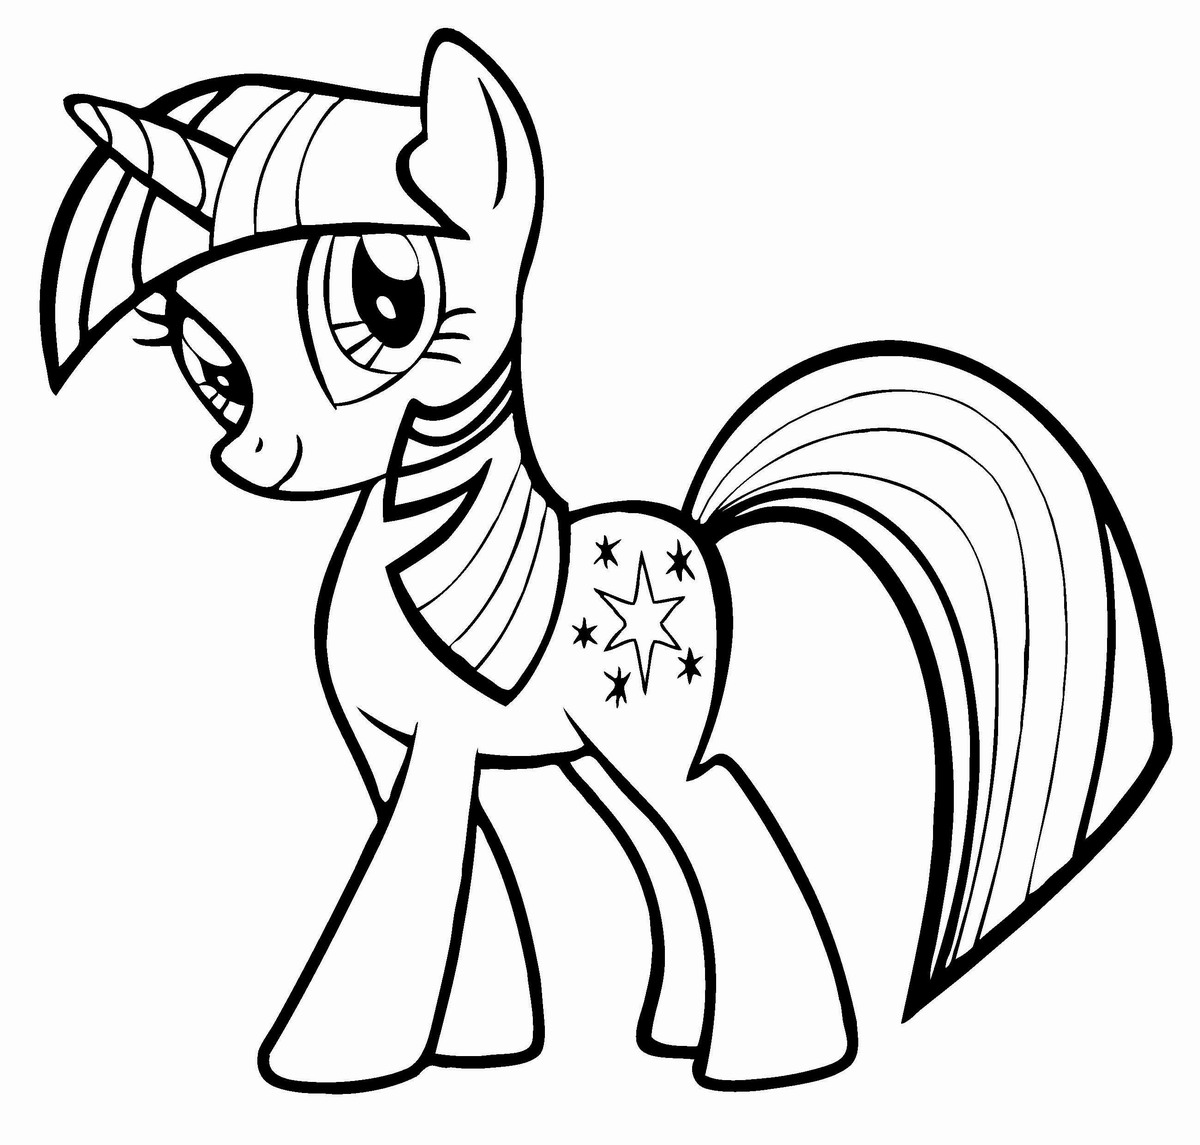 pony for coloring free printable my little pony coloring pages for kids coloring pony for